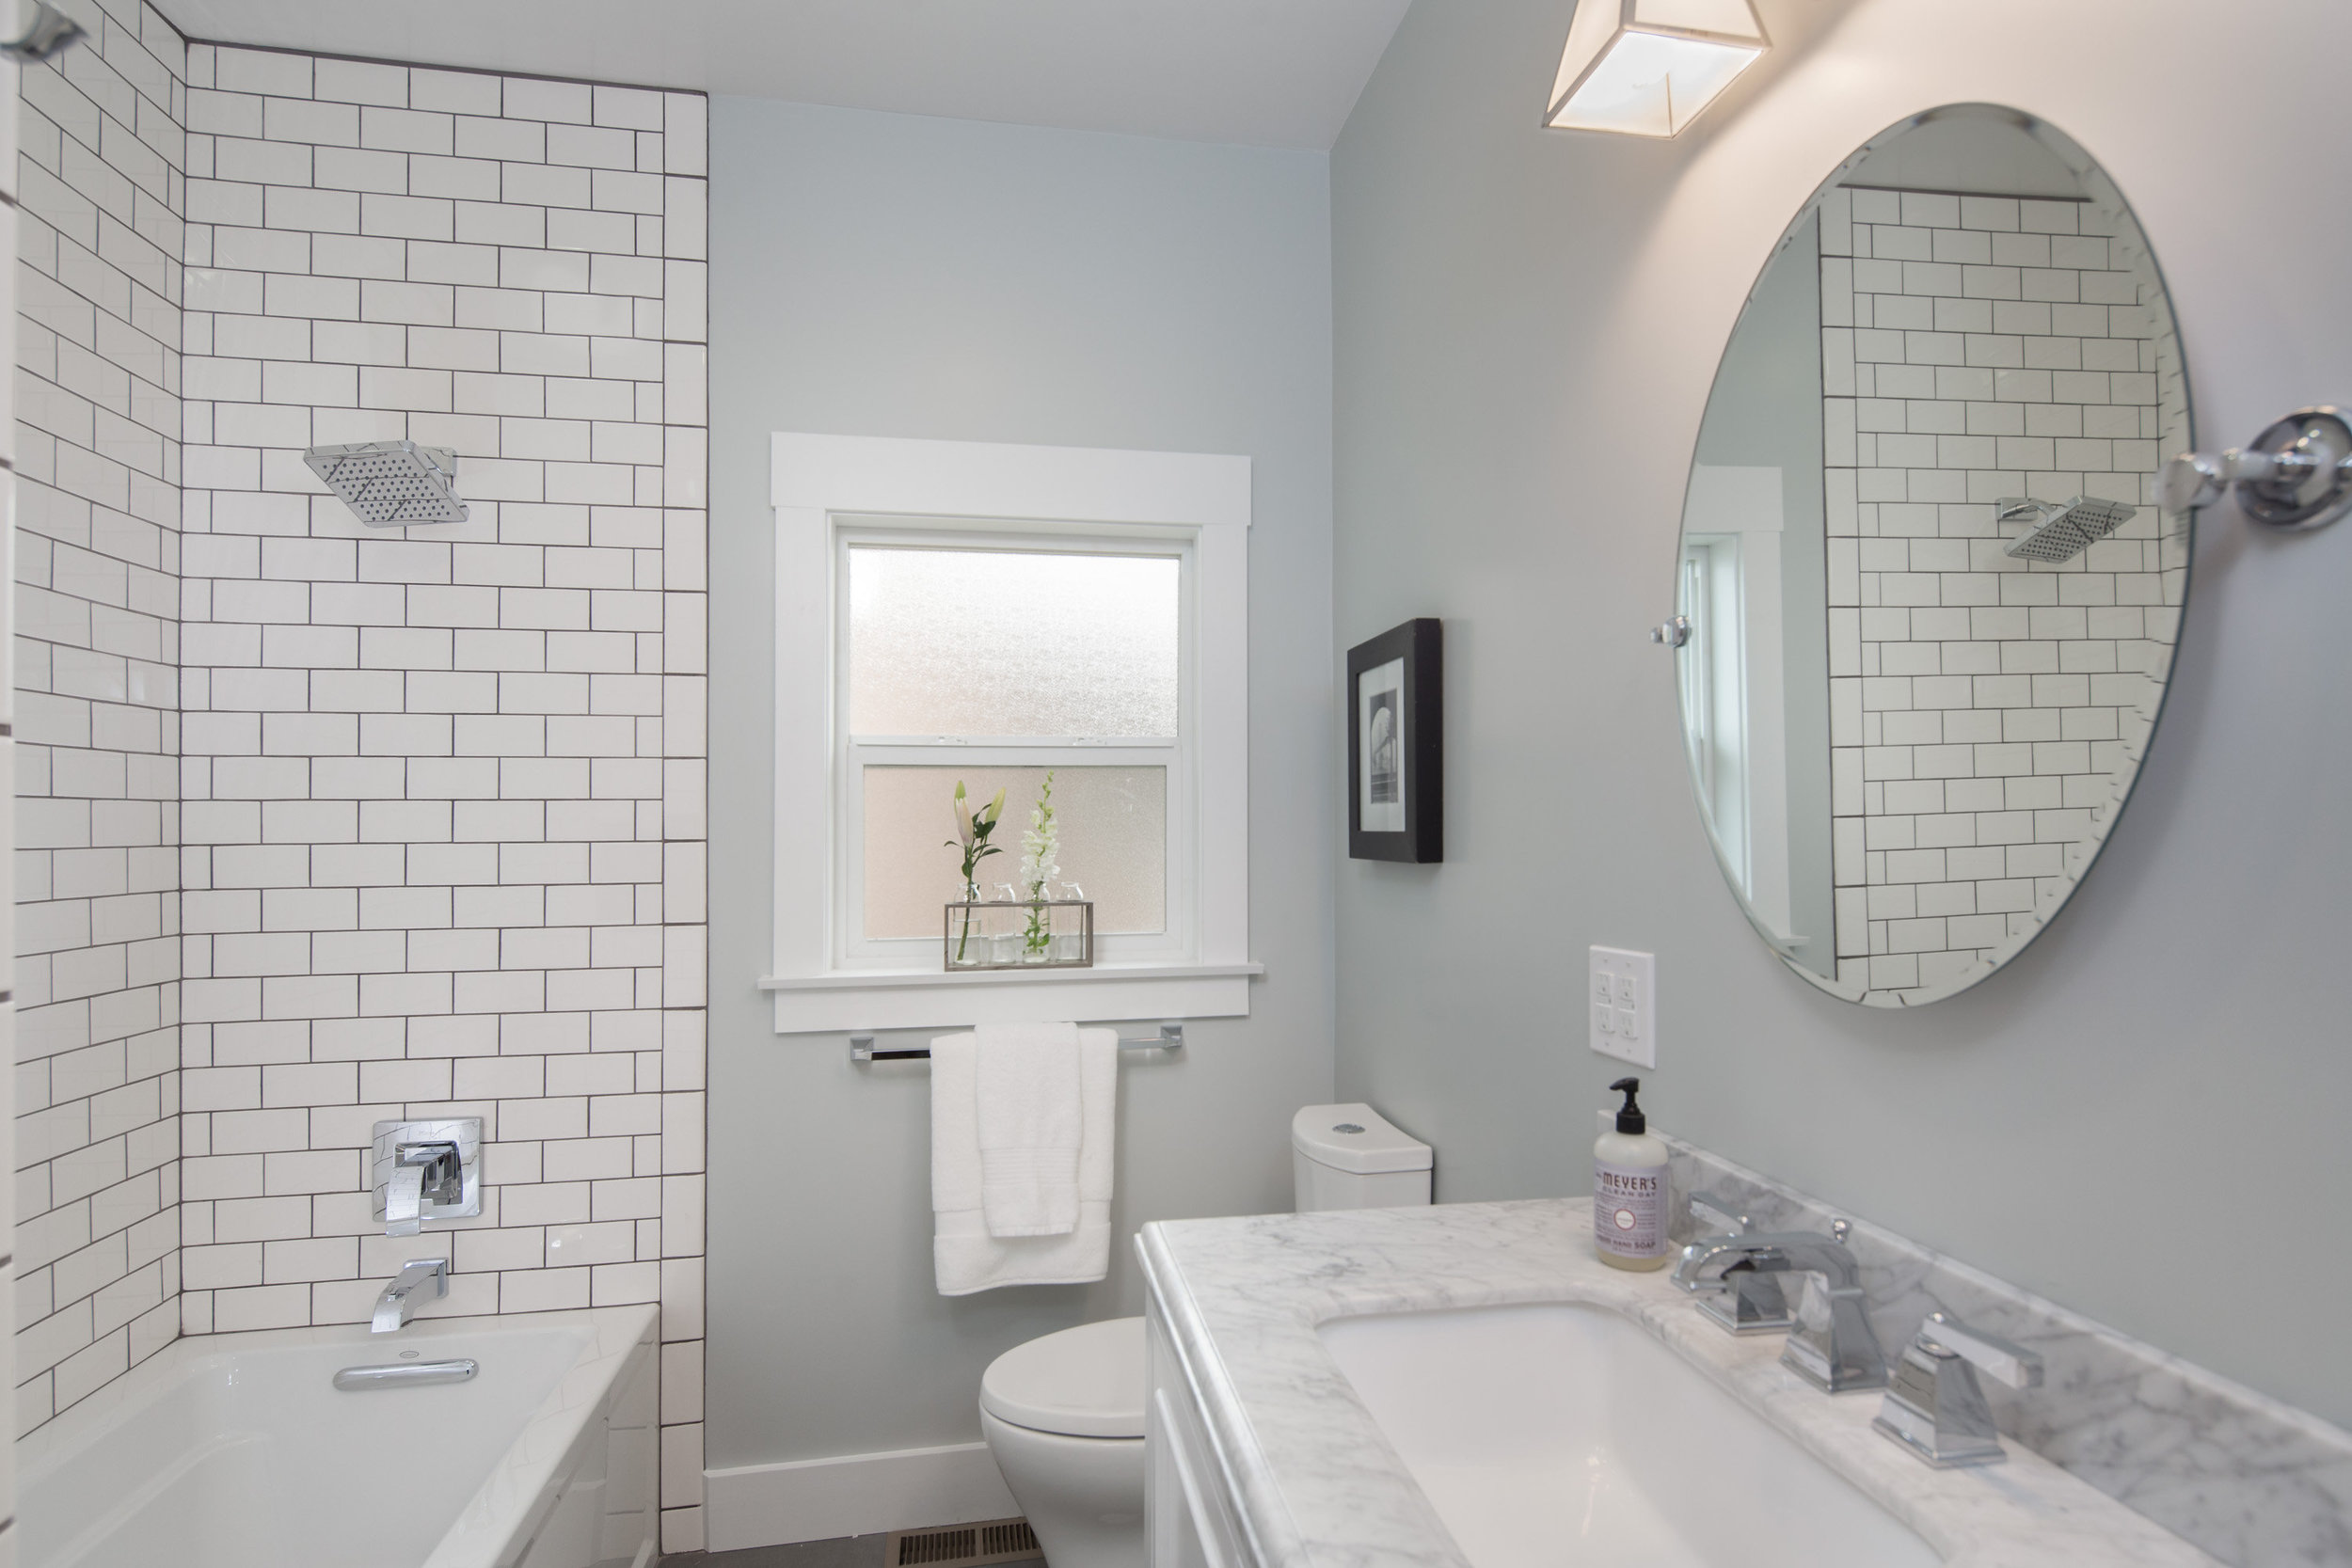 before and after bathroom renovation in Oakland, Glenview